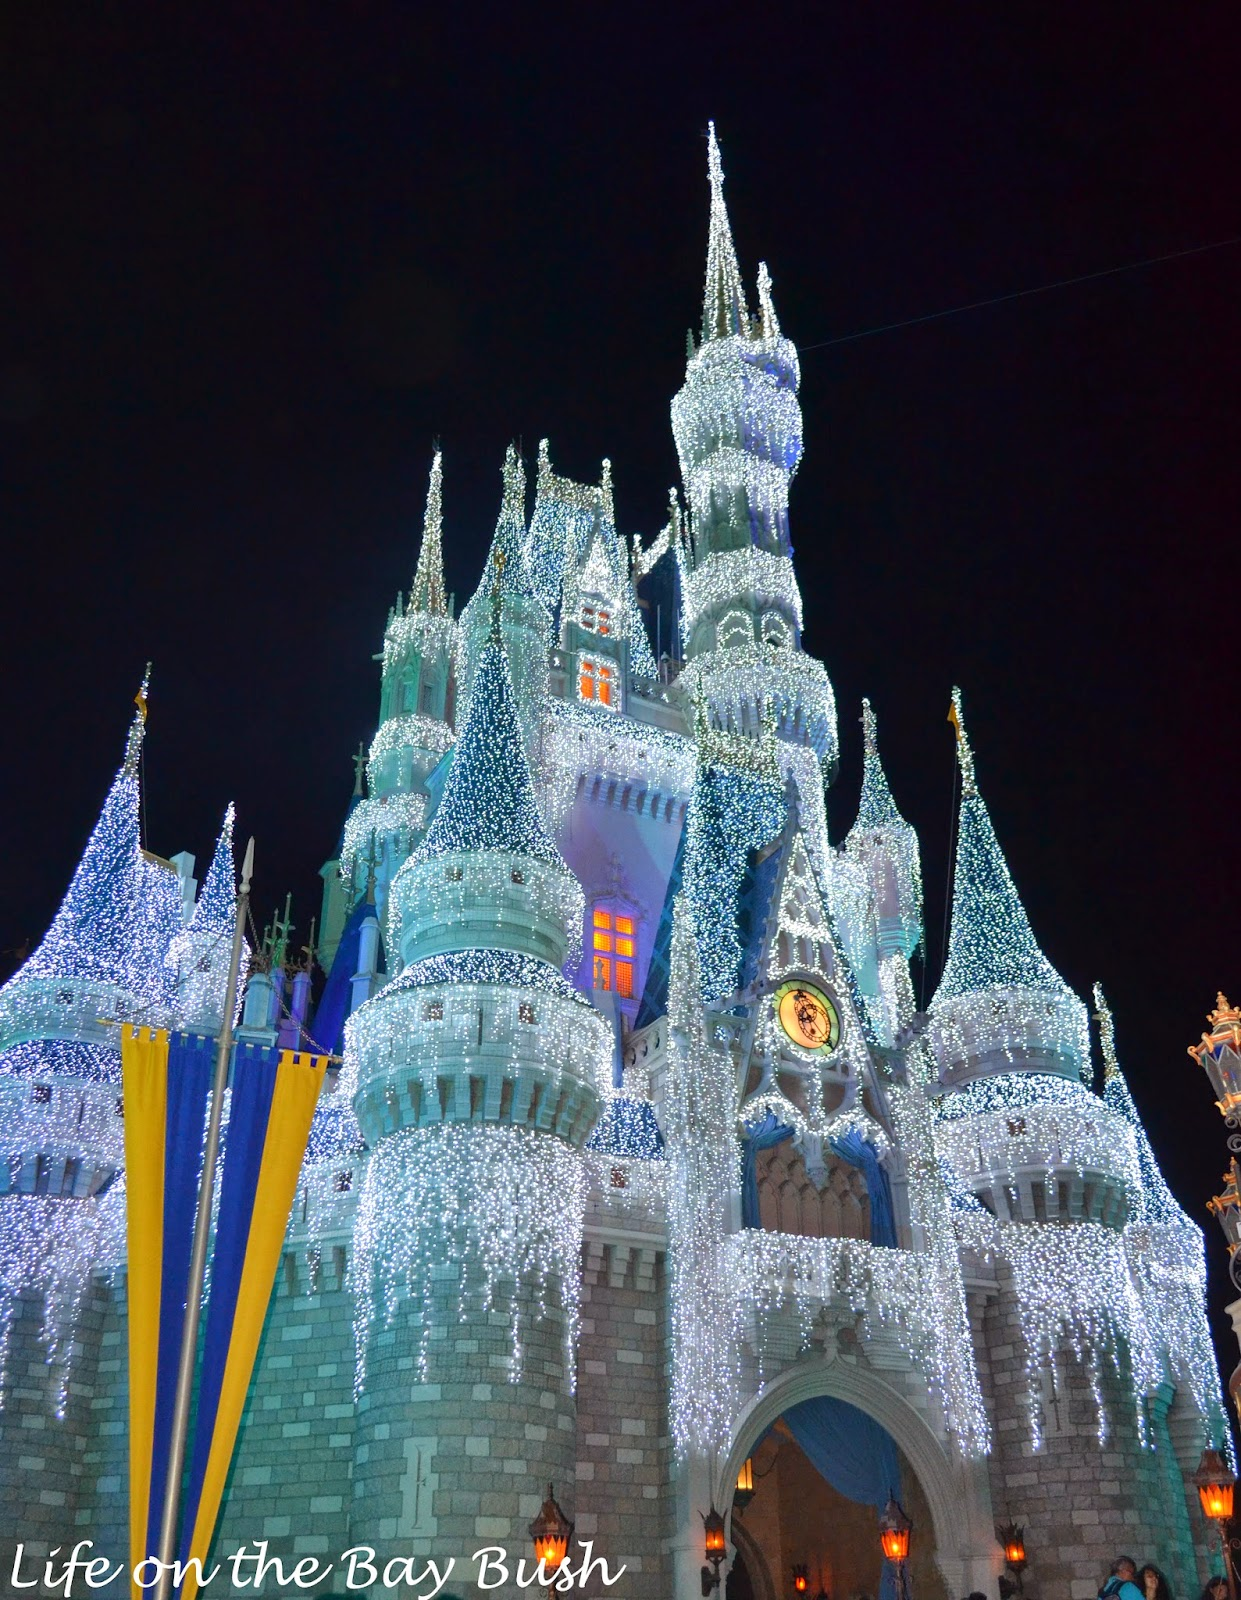 Iced out Castle at the Magic Kingdom